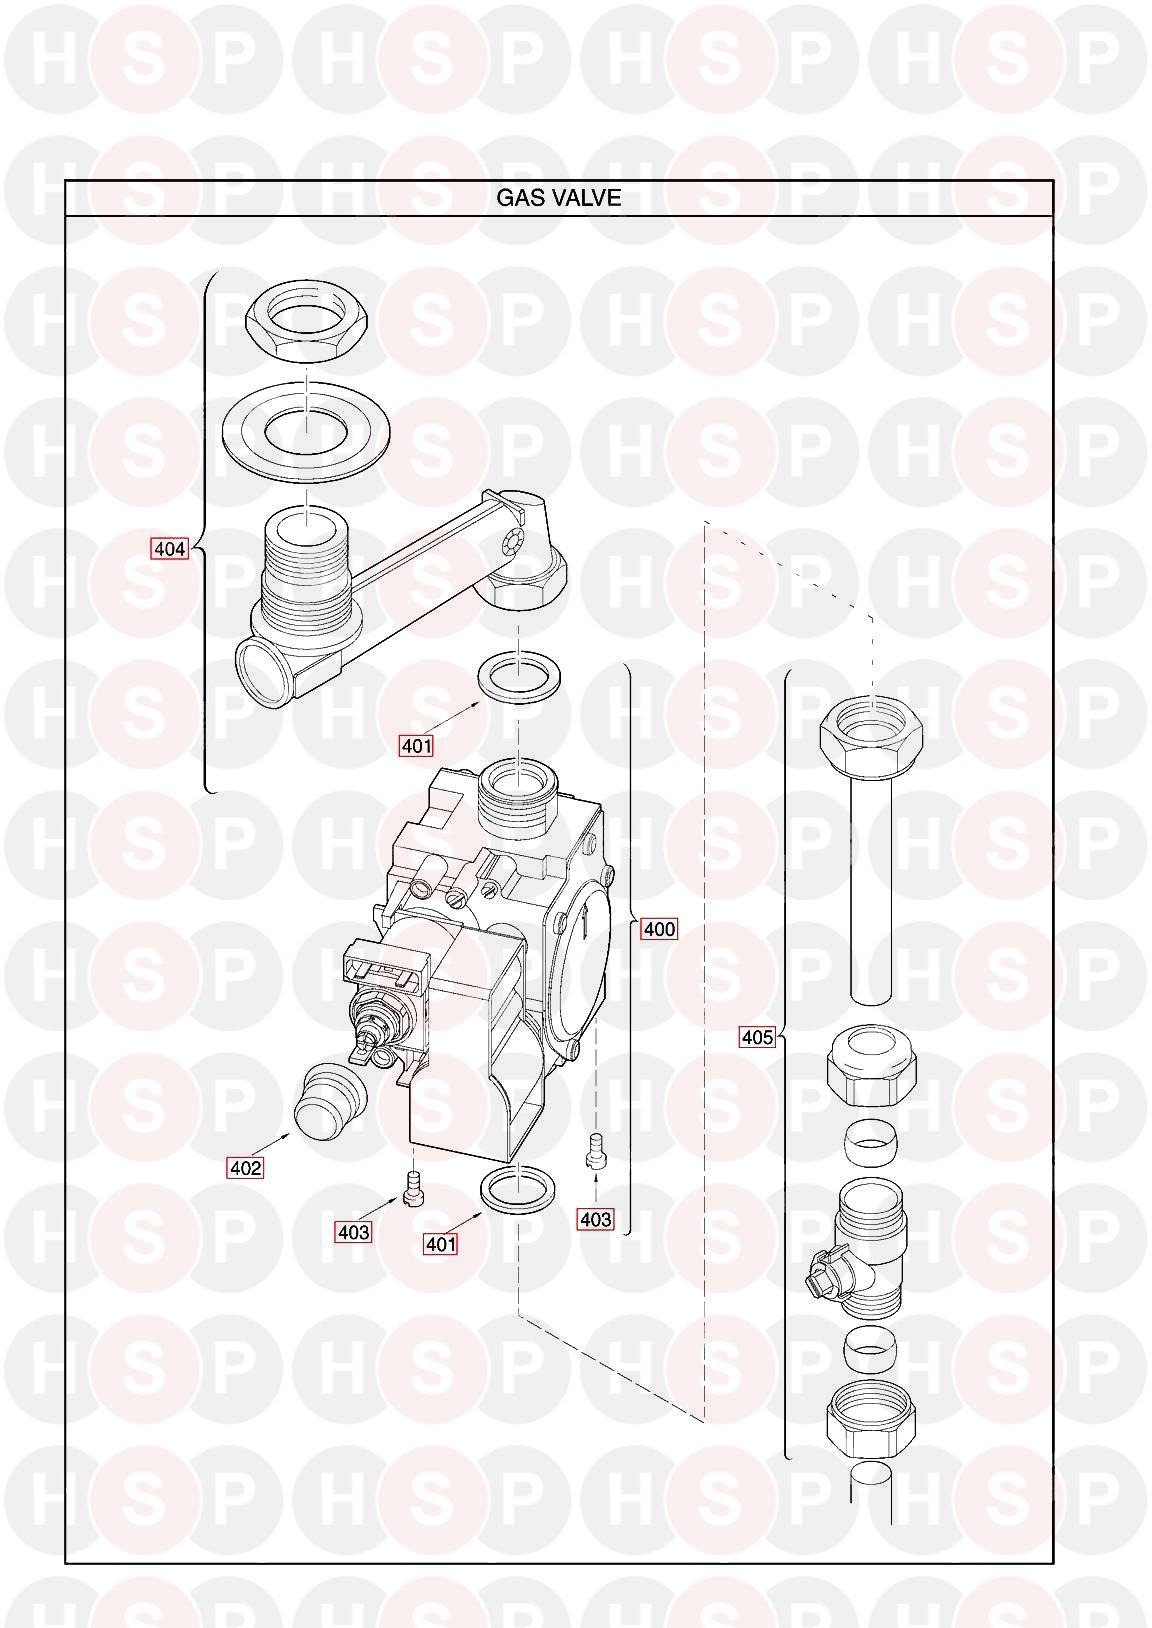 Main MULTIPOINT FF WATER HEATER (GAS VALVE) Diagram